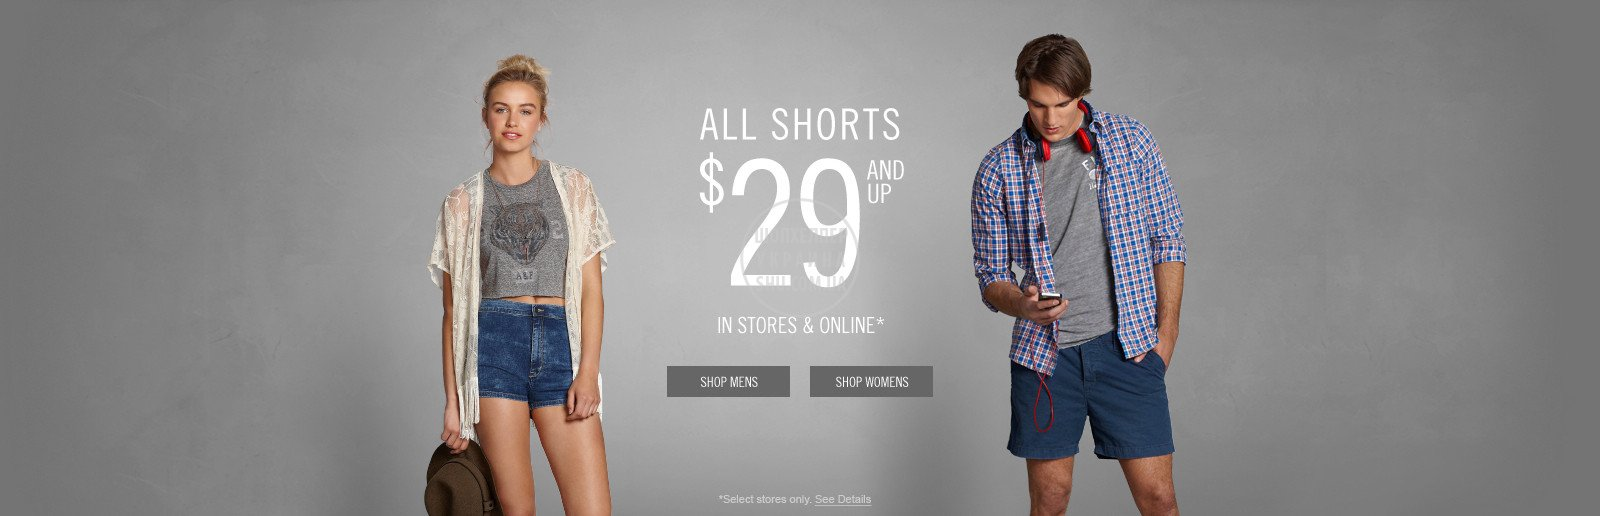 anf-us-20140424-hphero-shorts.jpeg